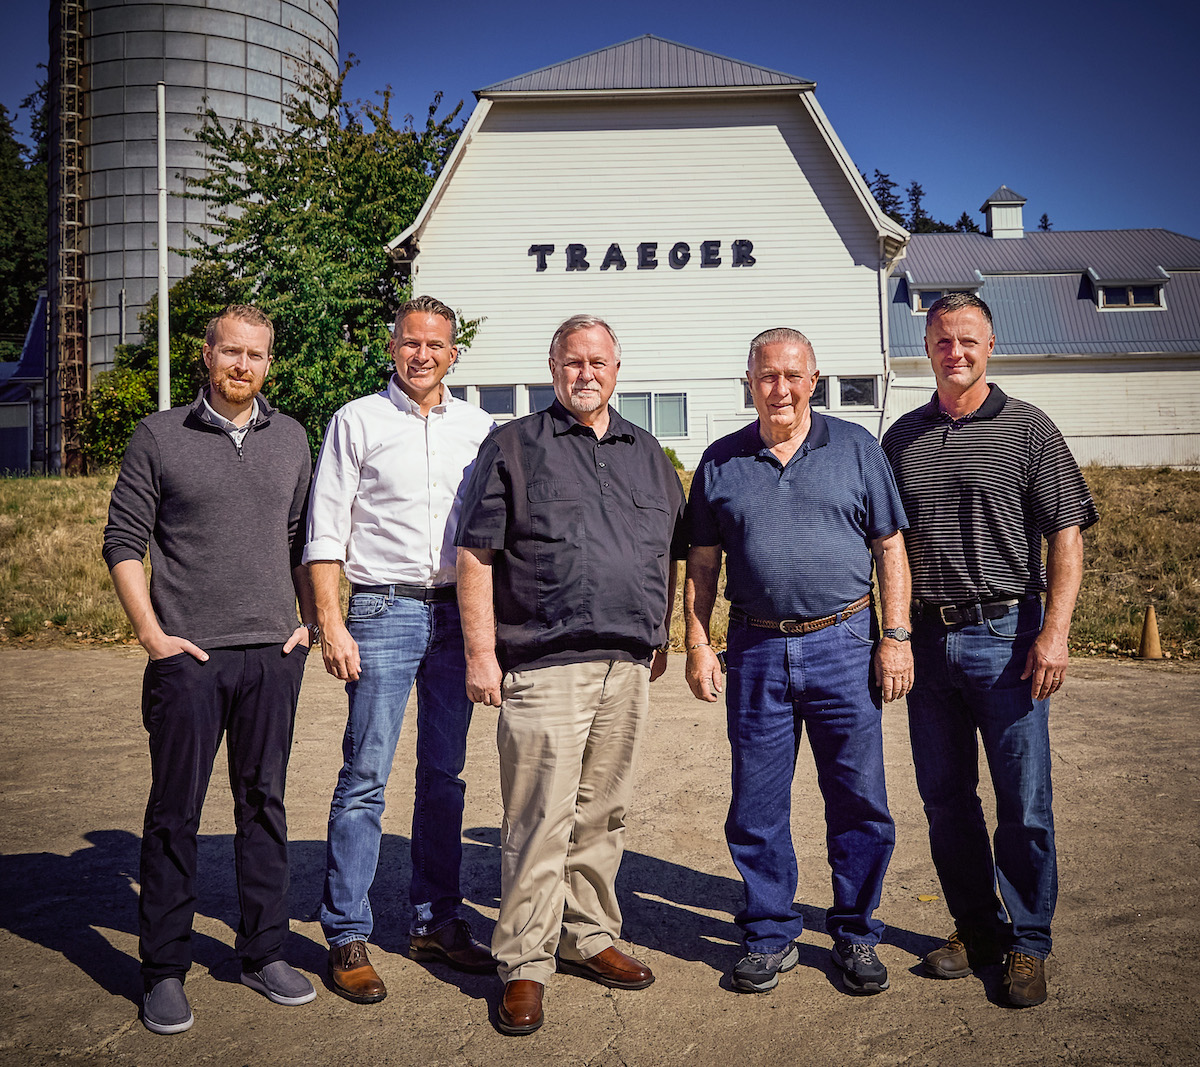 Joe Traeger joins Louisiana Grills